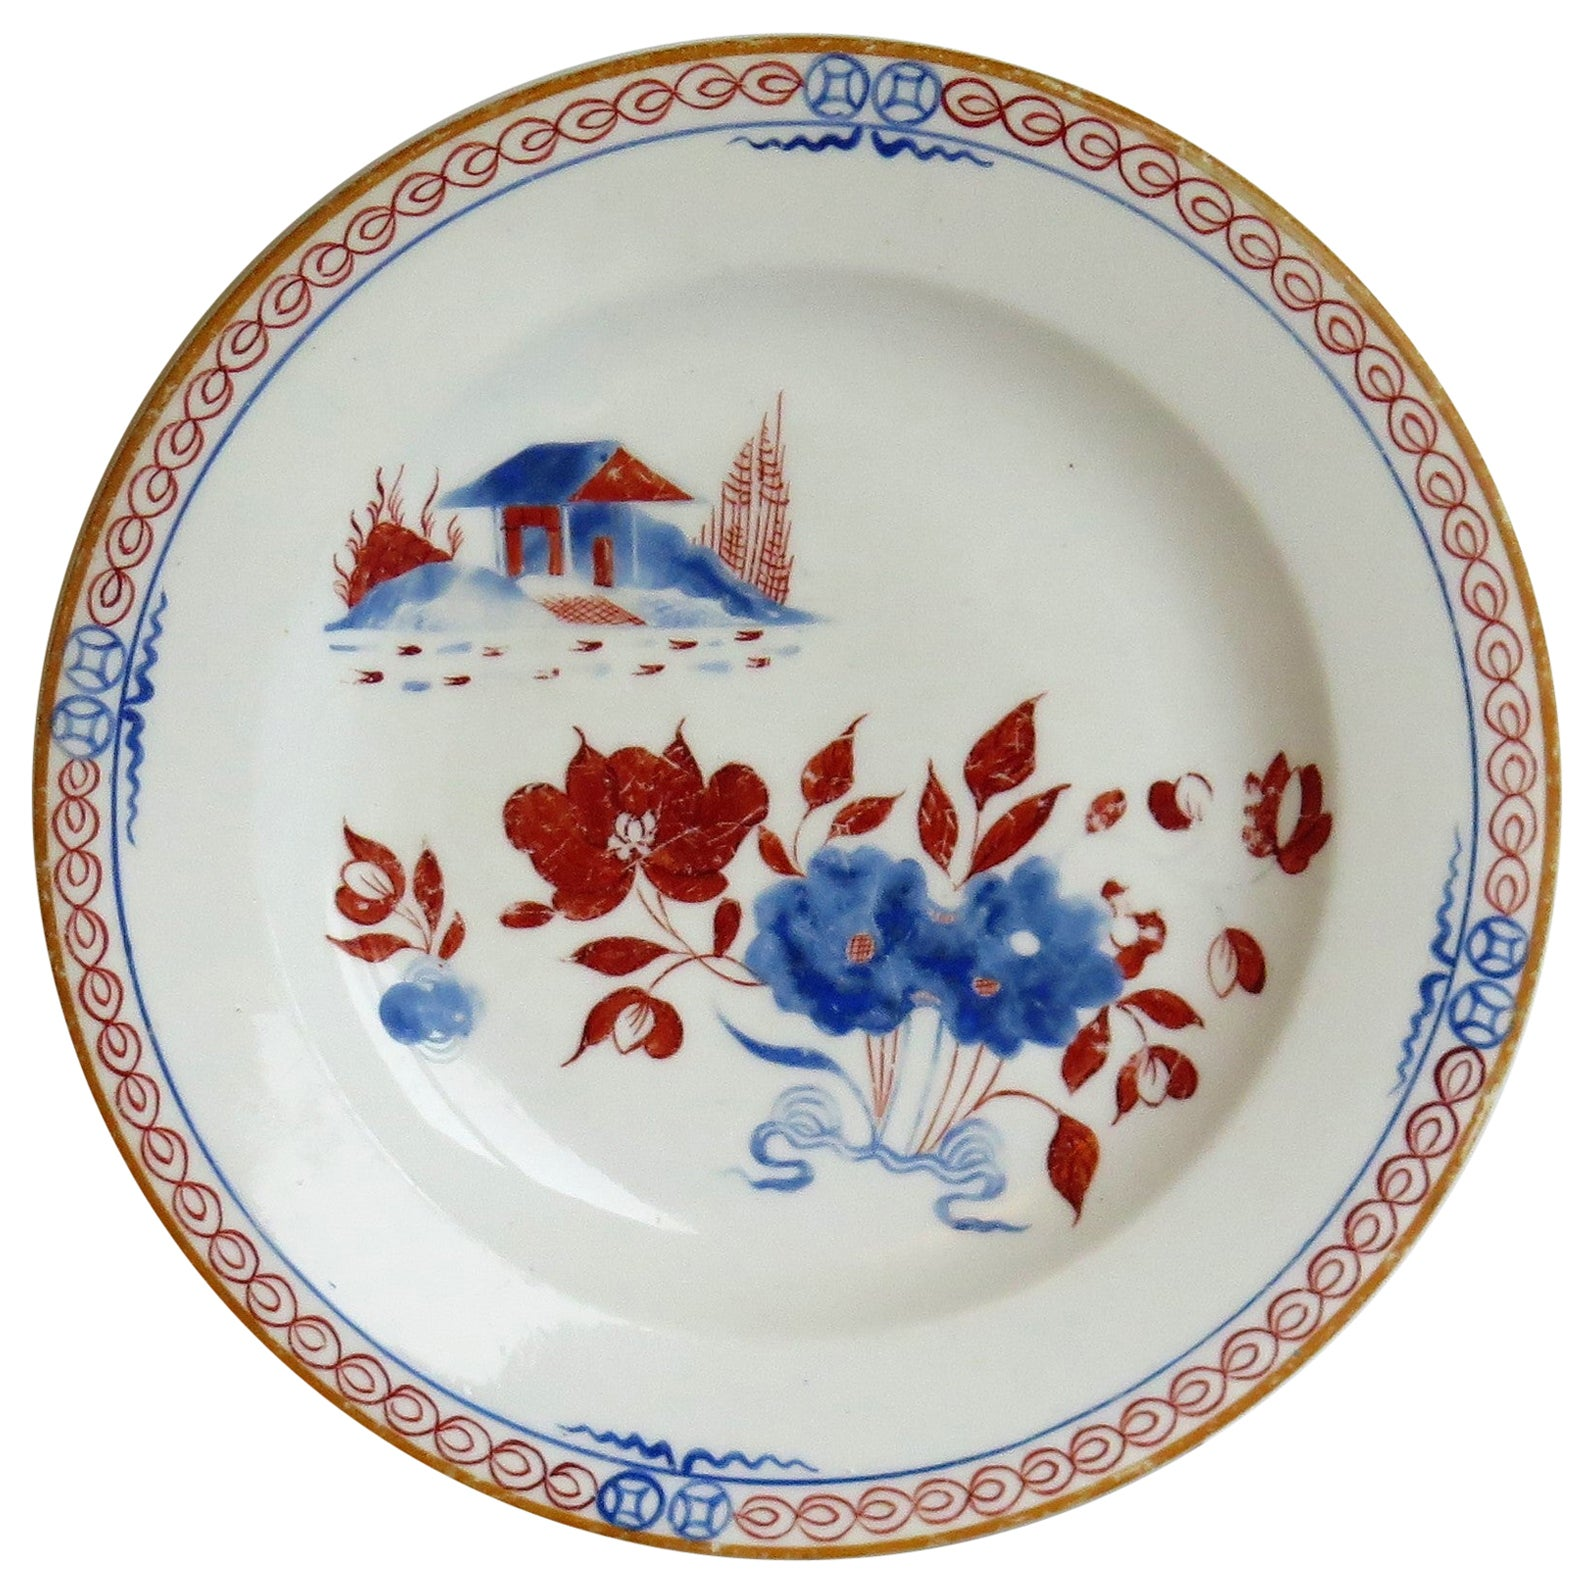 Early 19th C. Spode Plate or Dish Porcelain Hand Painted Dolls House Pattern 488